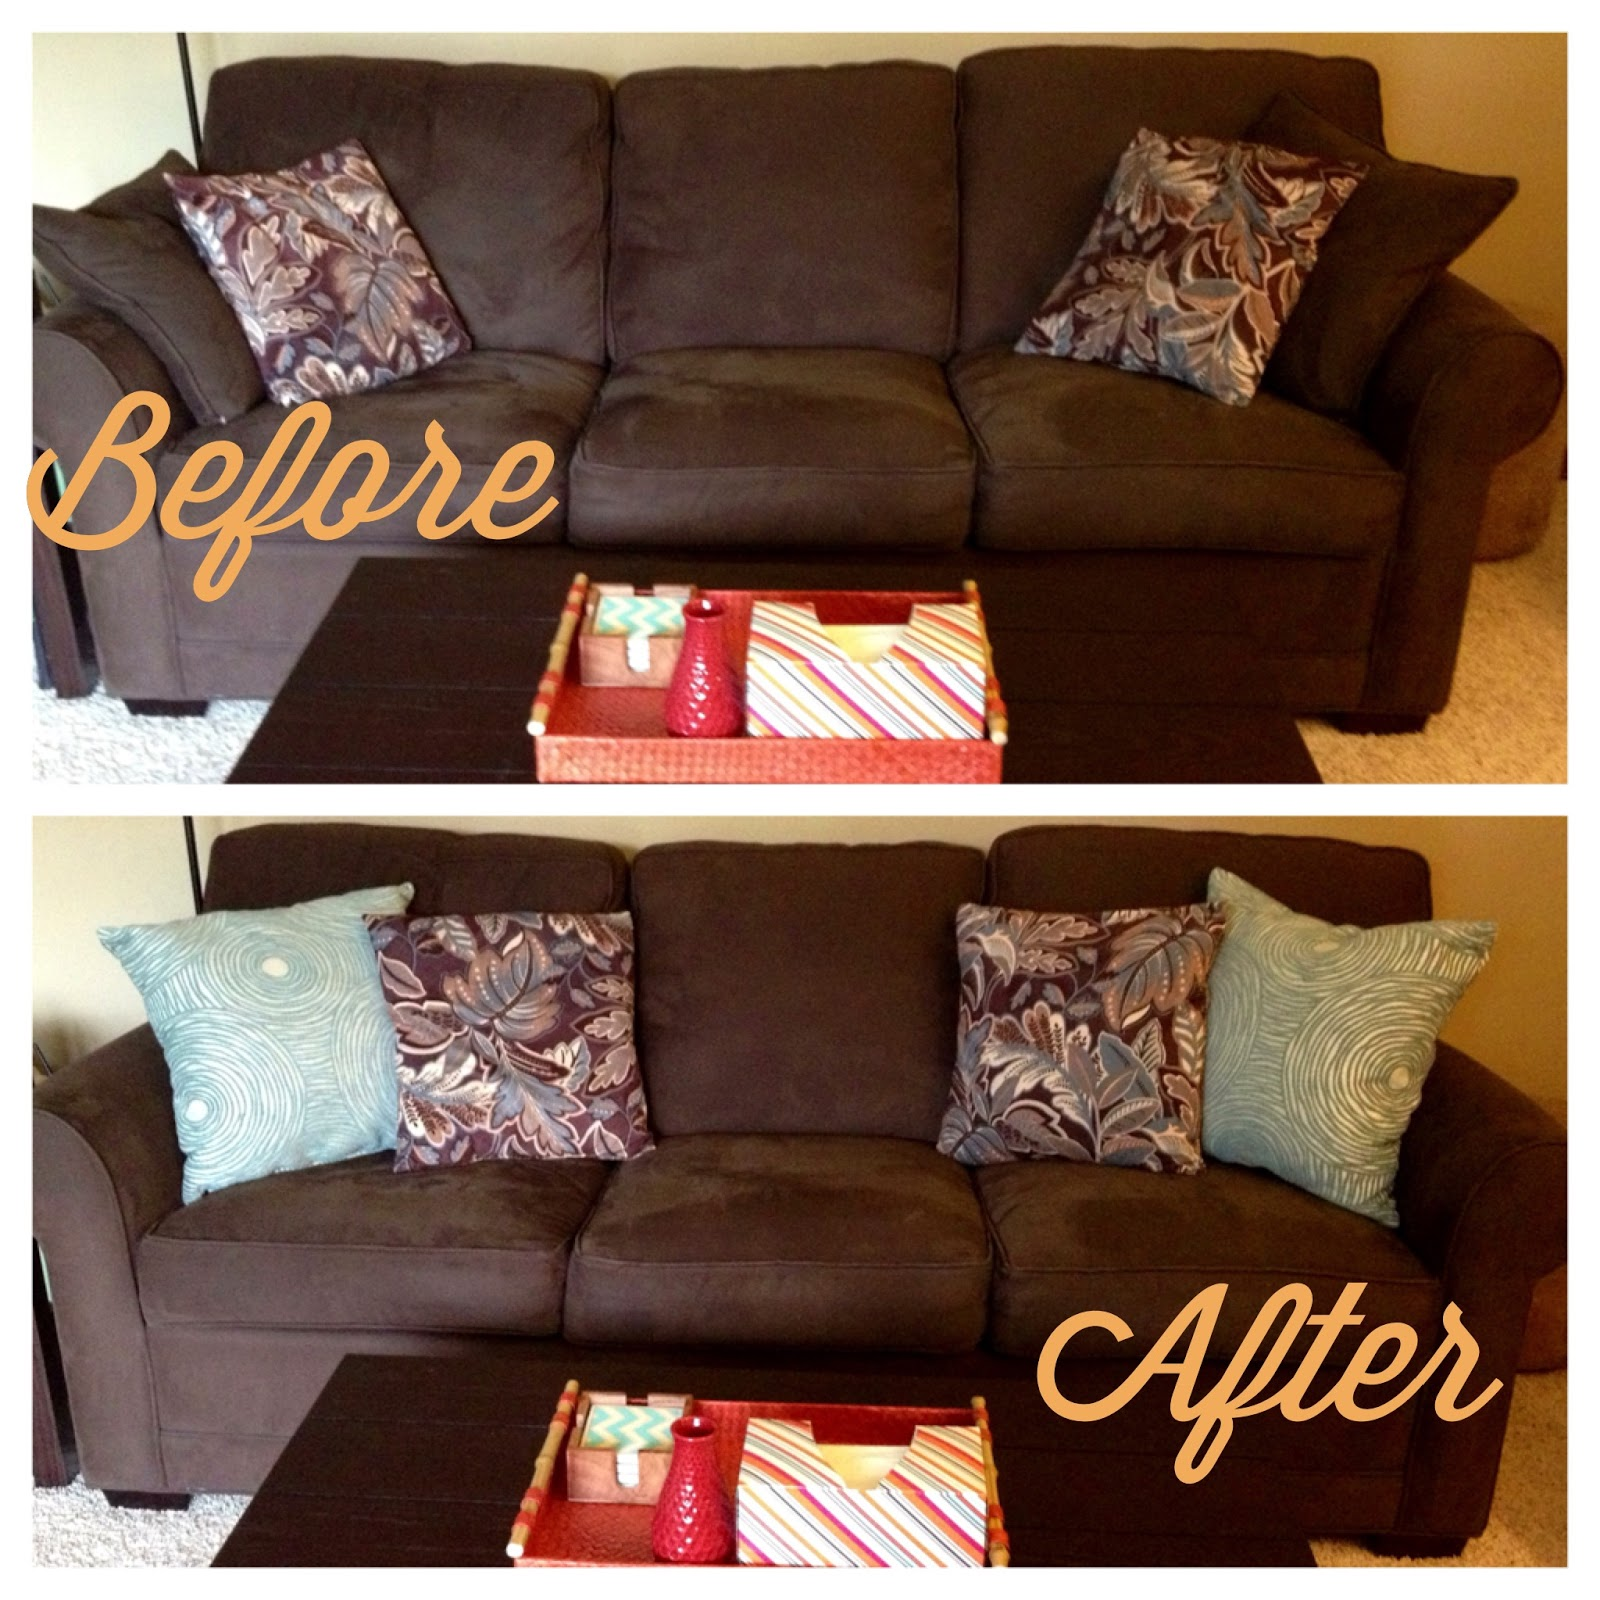 Amazing Before Last Summer My Brown Couch Got Two Patterned Throw Pillows . accent pillows for sofa